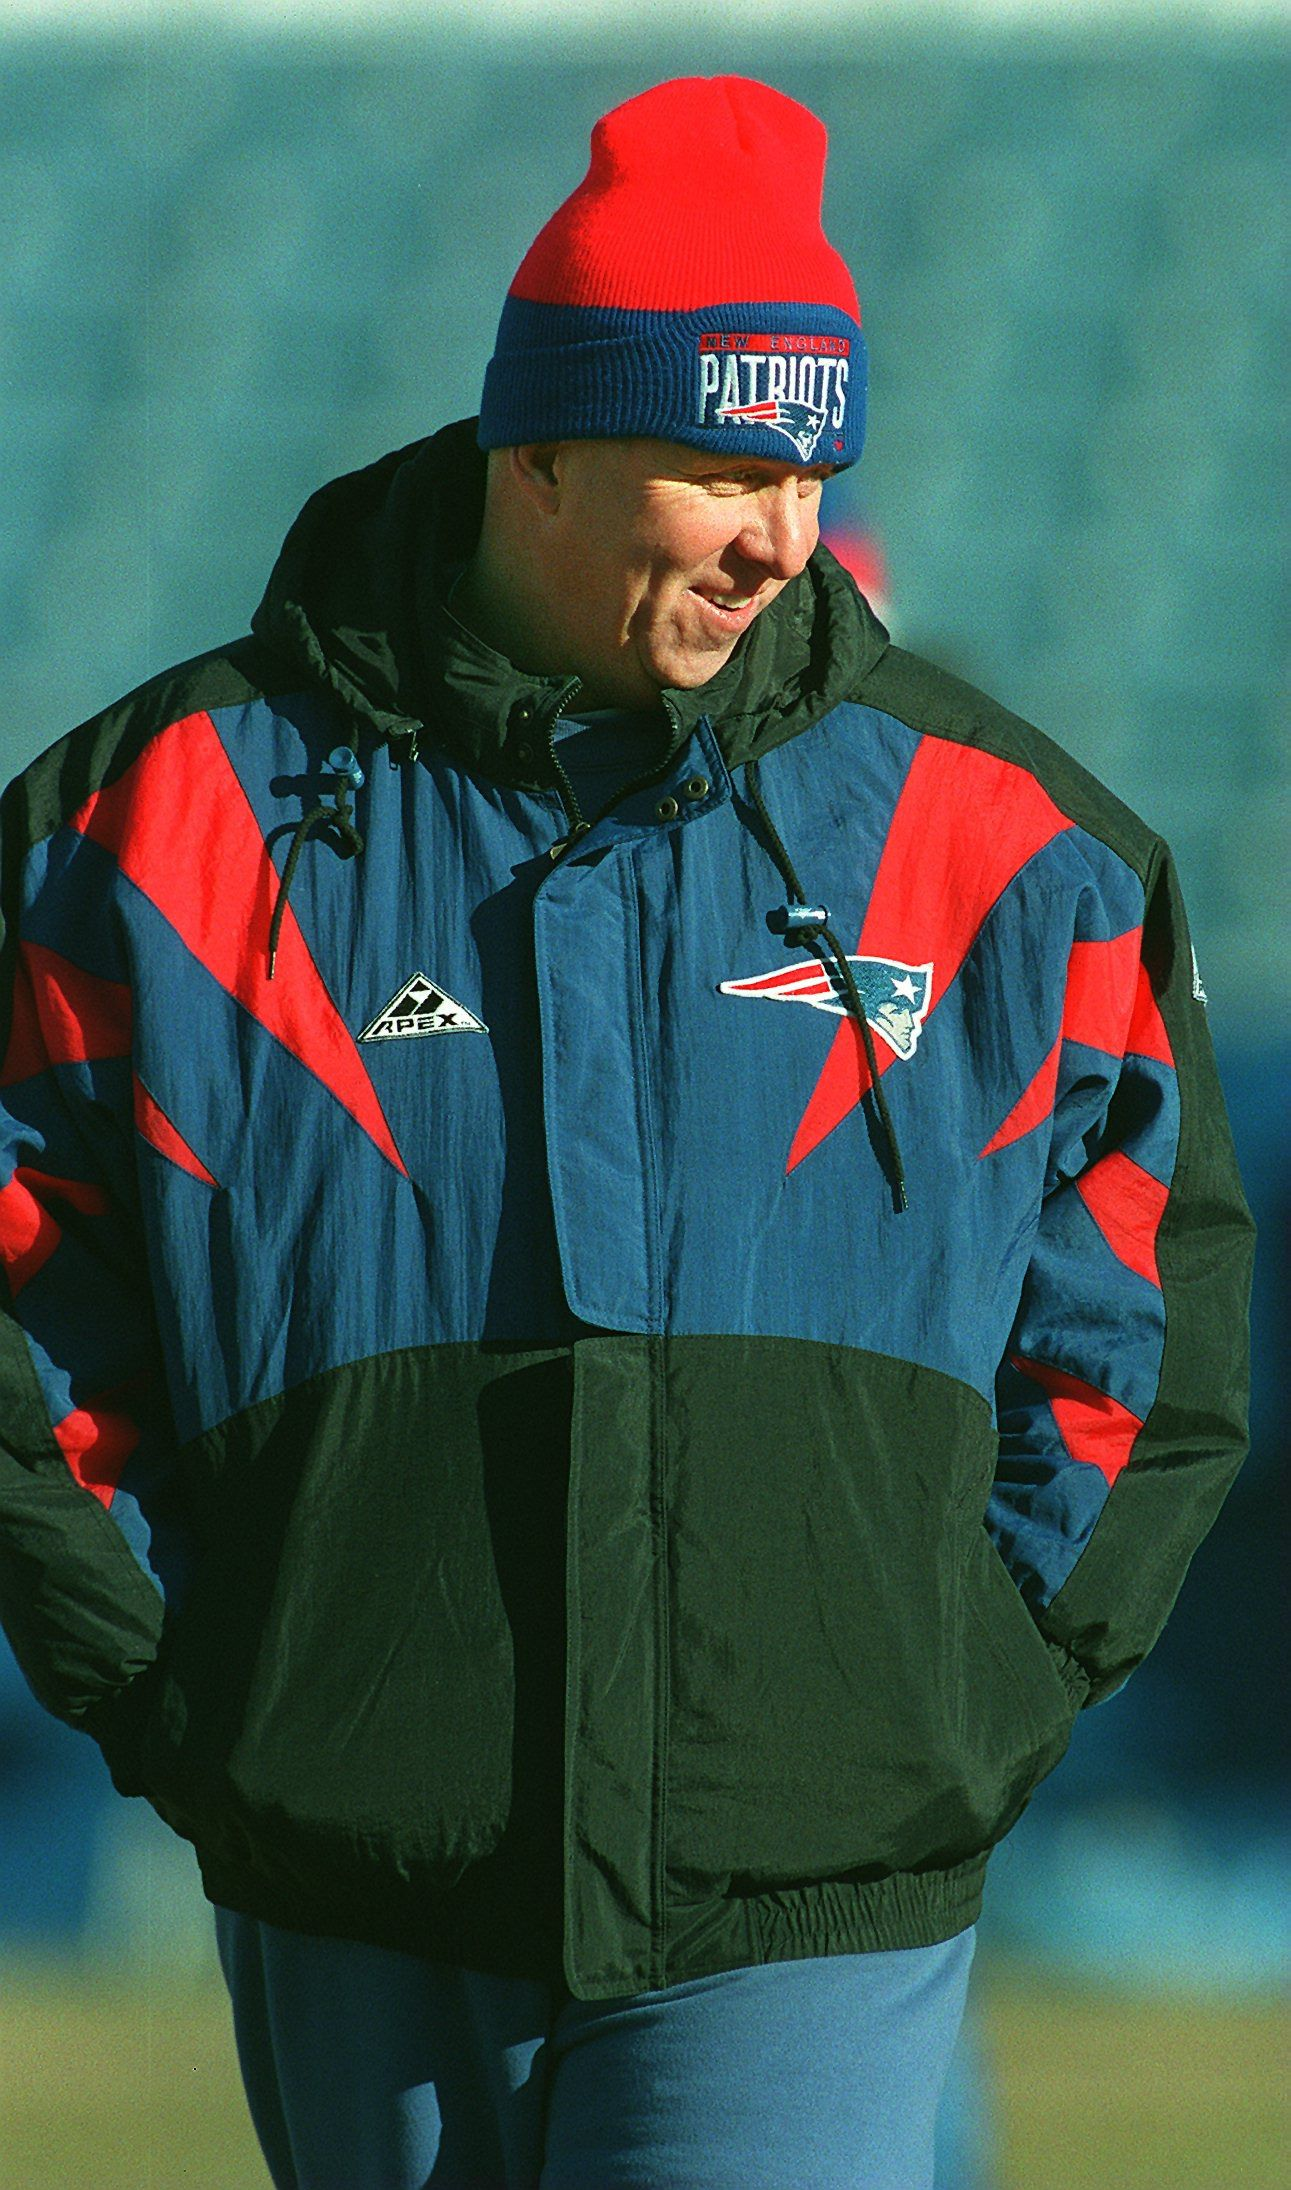 Bill Parcells reflects on his Patriots years - The Boston Globe